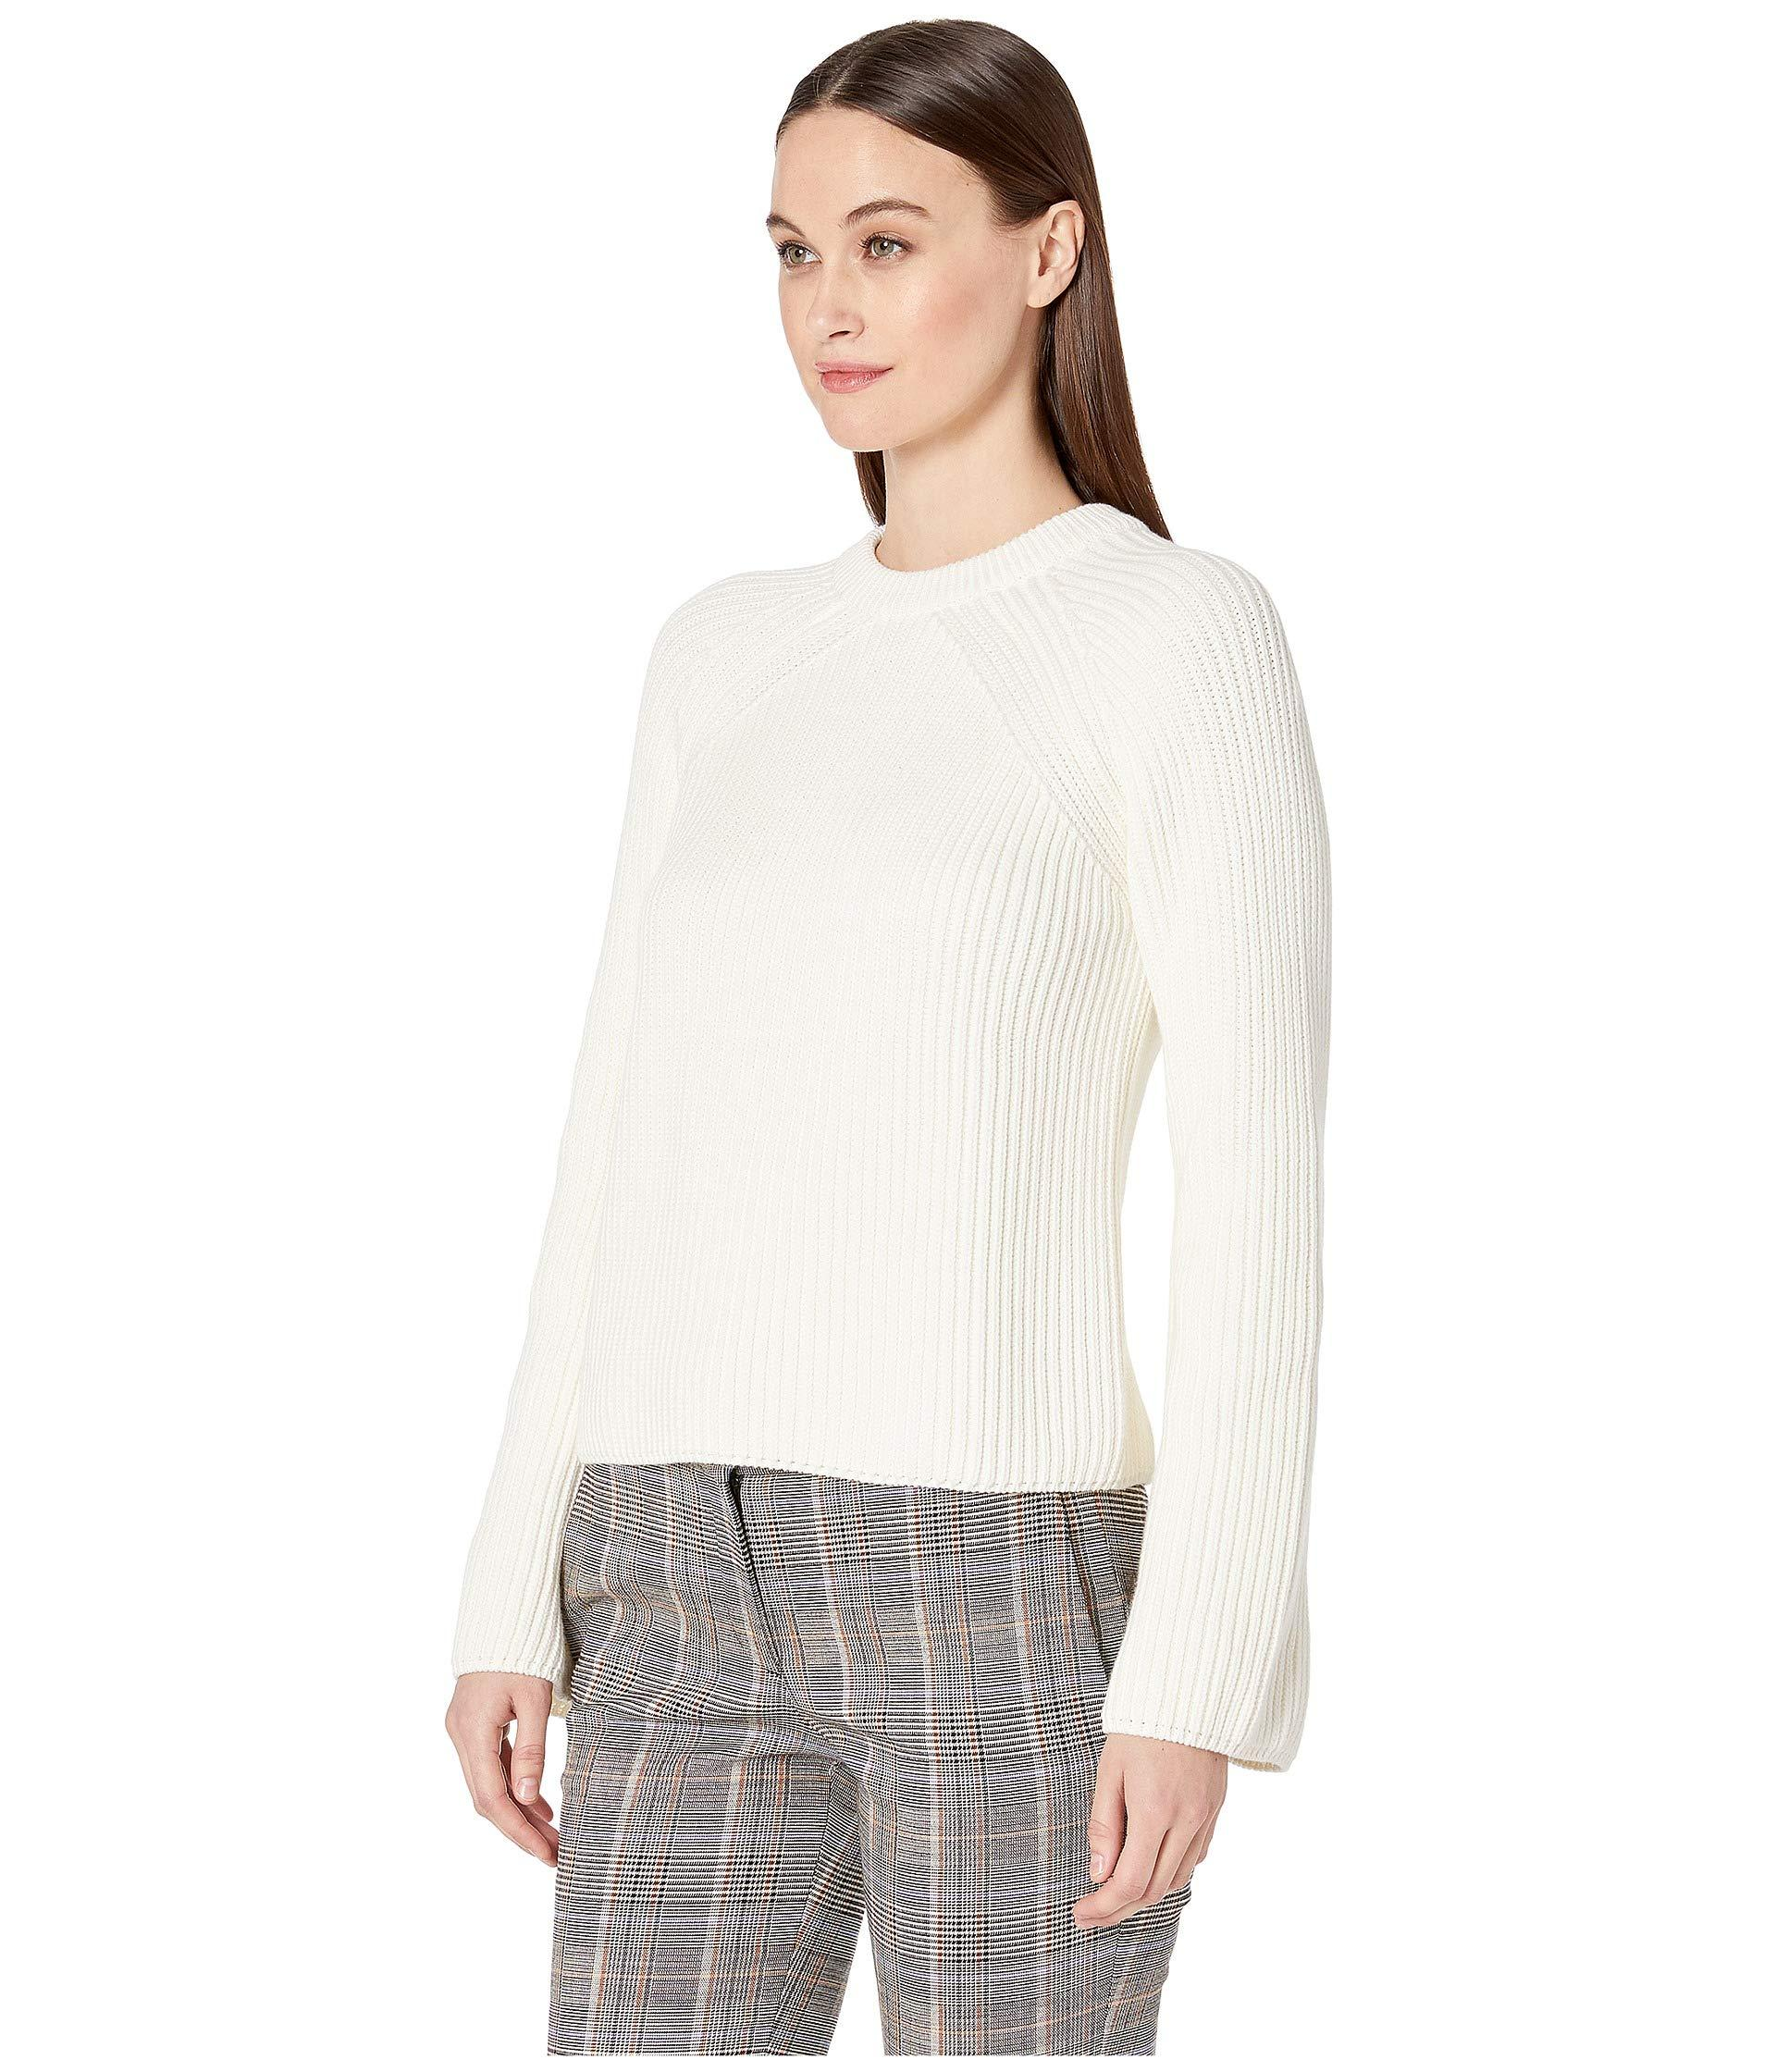 5a053218e4 Lyst - Mcq Alexander Mcqueen Lace-up Knits (ivory) Women s Clothing ...